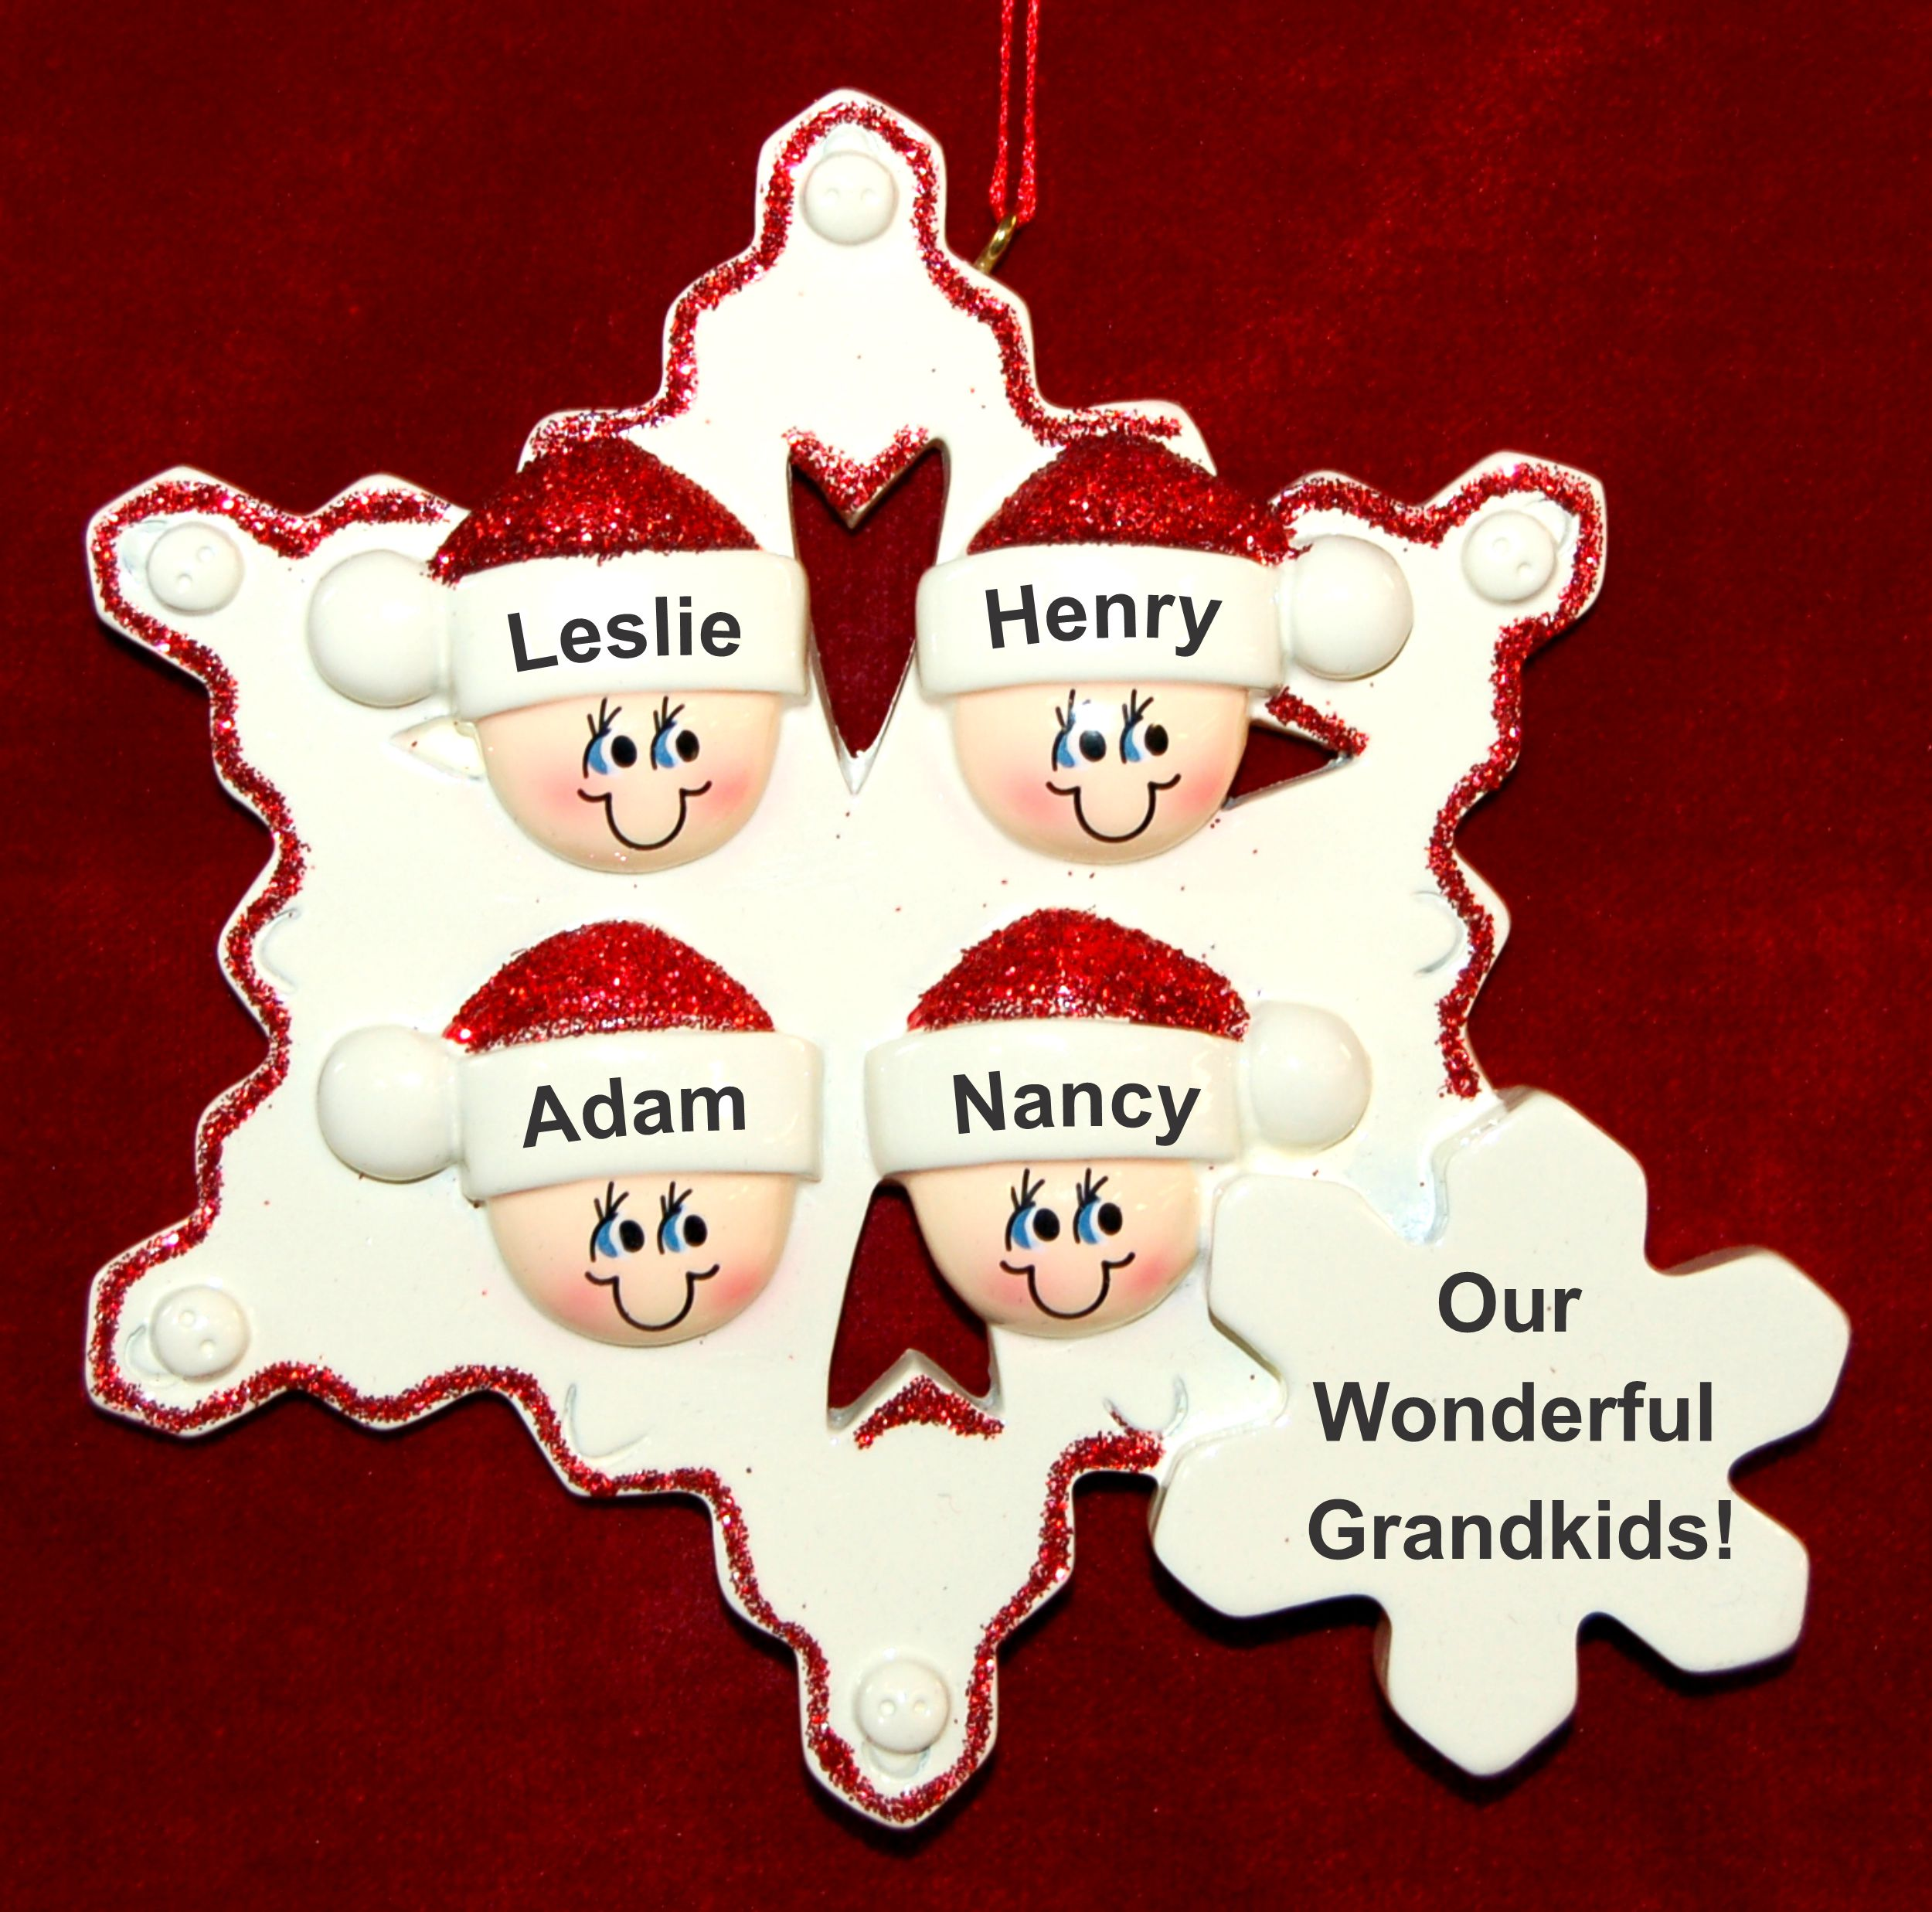 Personalized Grandparents Christmas Ornament Snowflakes 4 Grandkids by Russell Rhodes